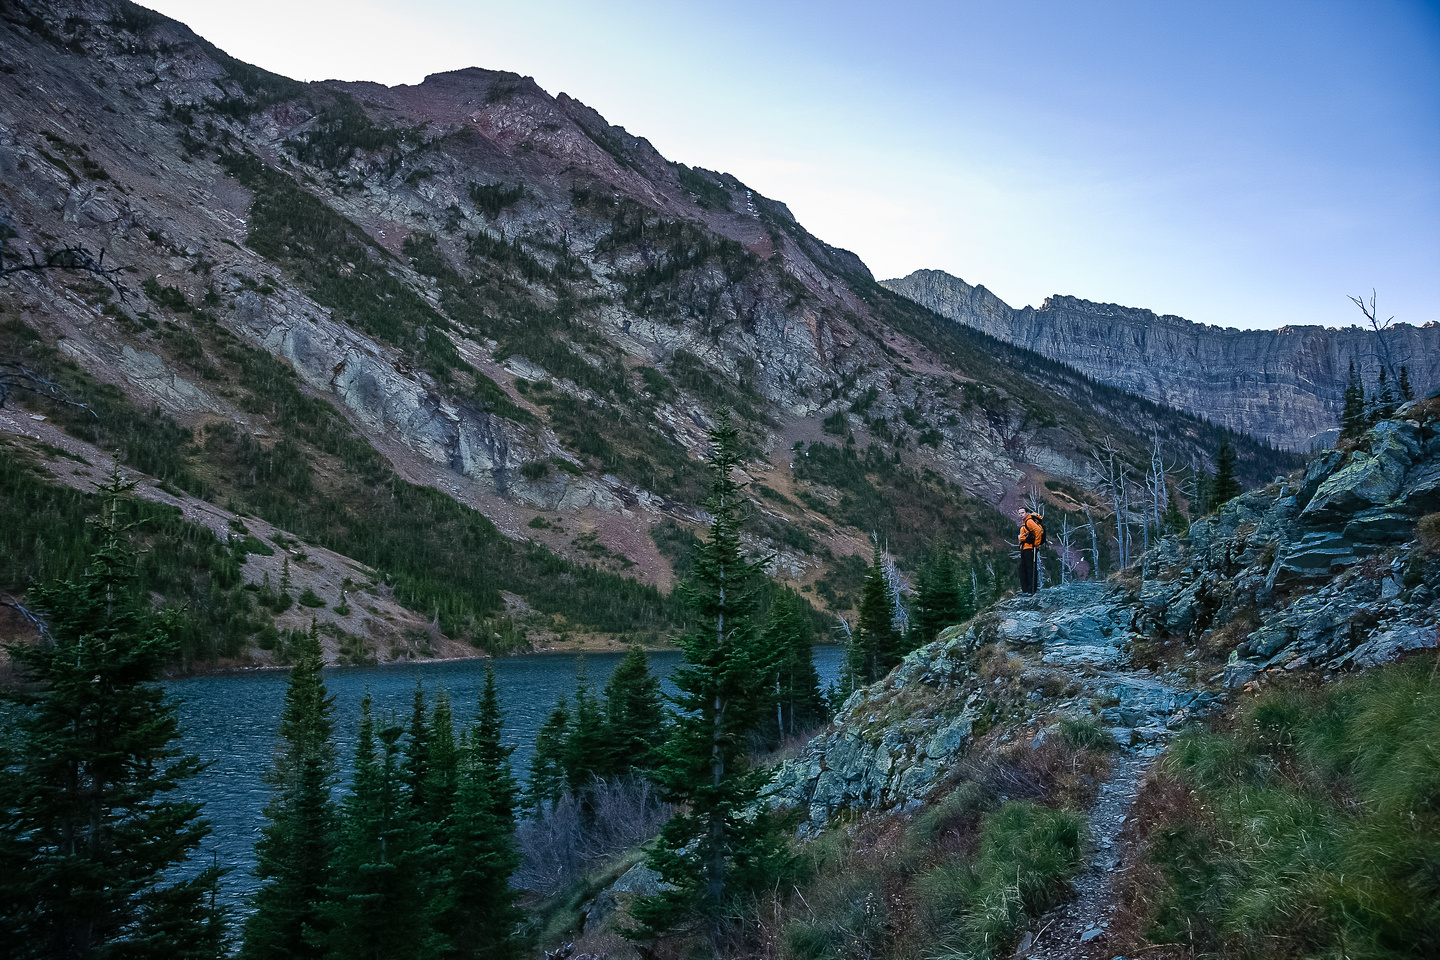 Wietse surveys Bertha Lake as we make our way around it to our ascent route.